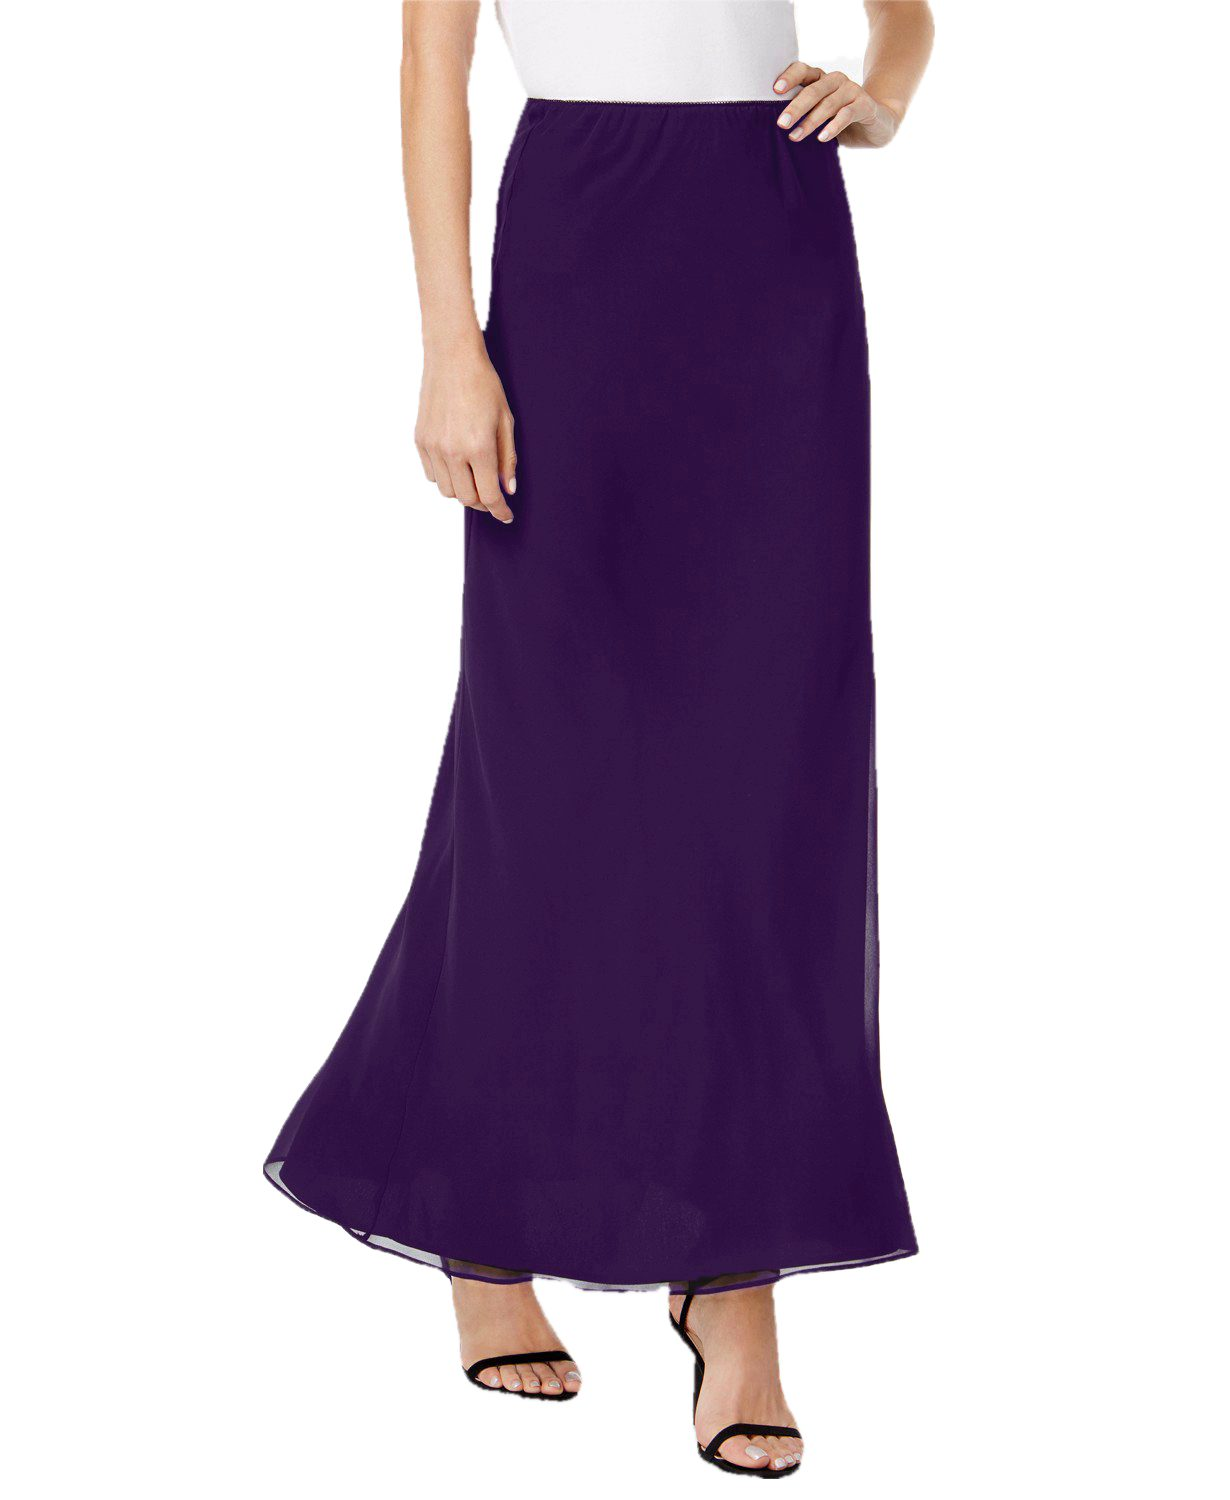 Ankle Length Flared Skirt in Purple